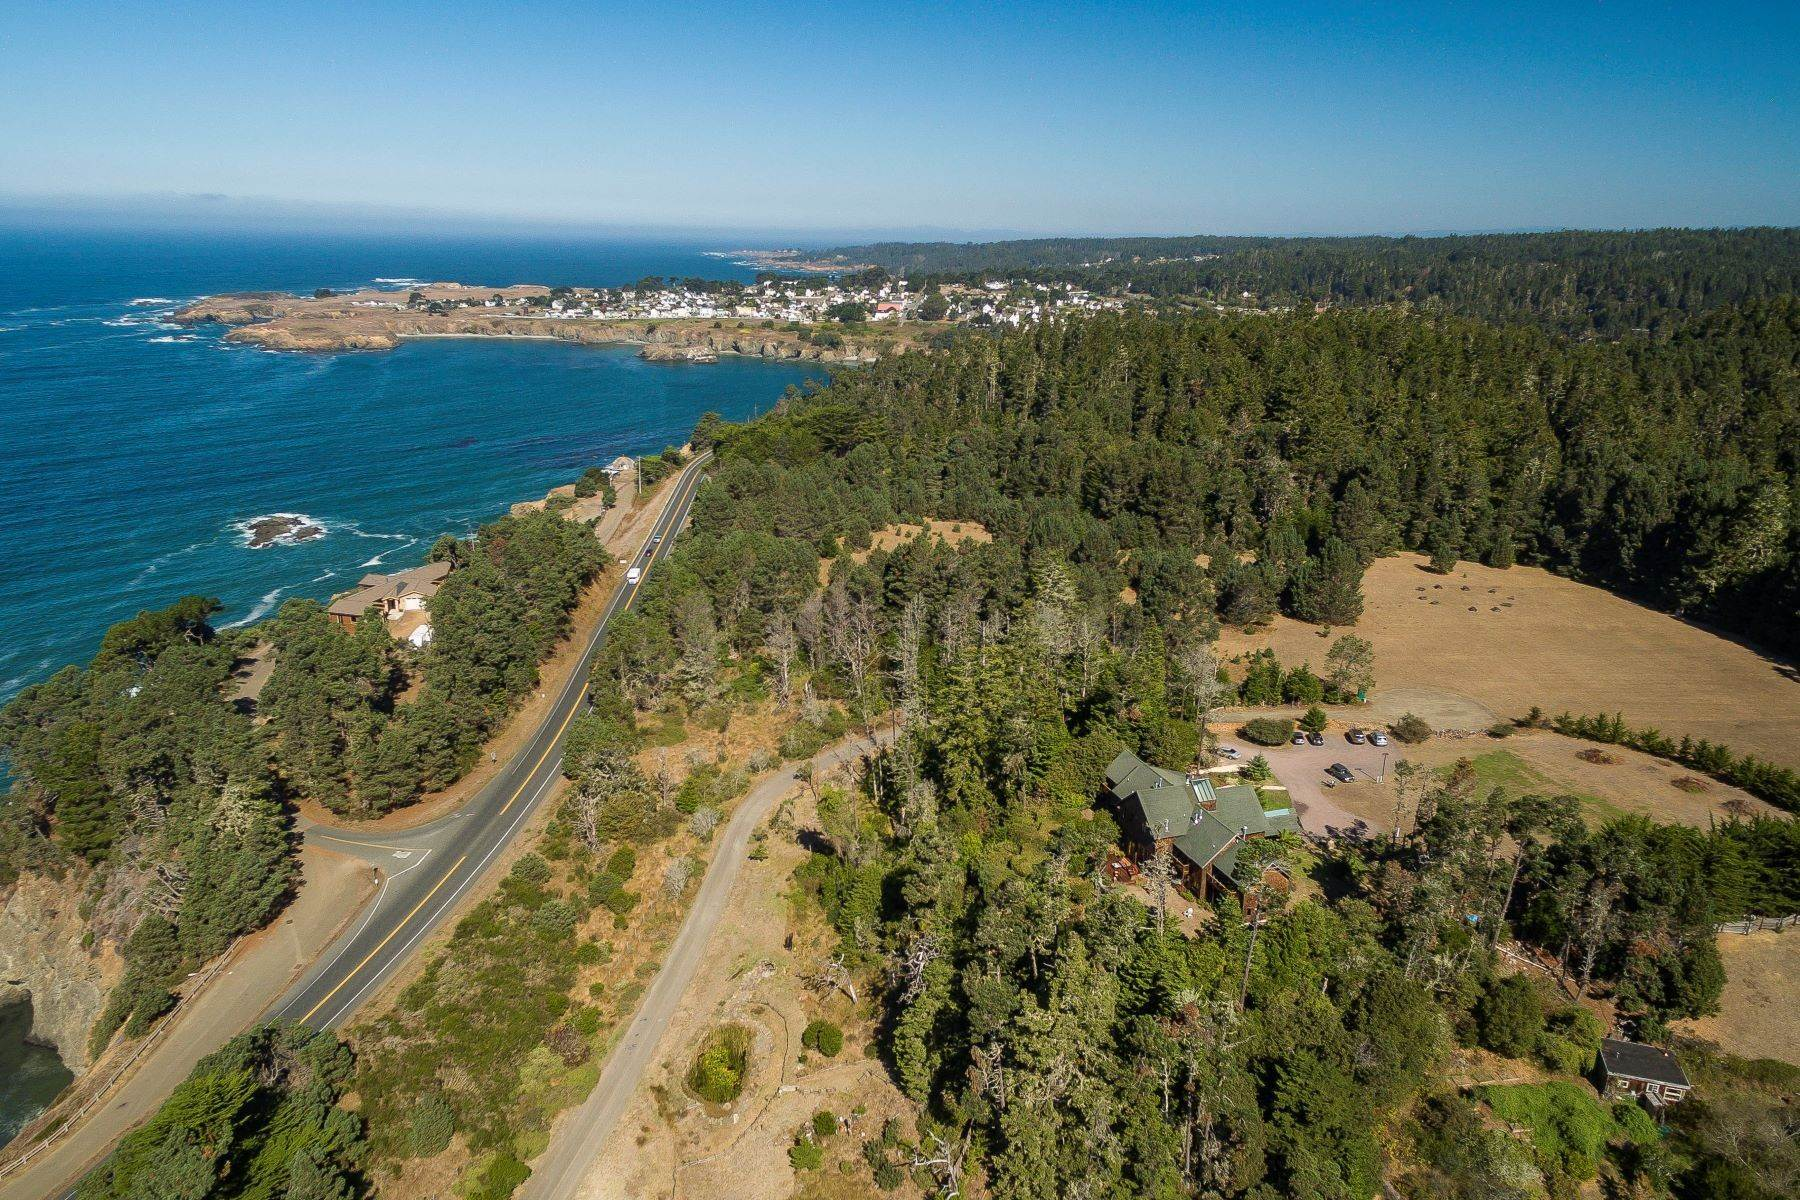 32. Property for Sale at Craftsman Lodge 9401 N. Highway 1 Mendocino, California 95460 United States